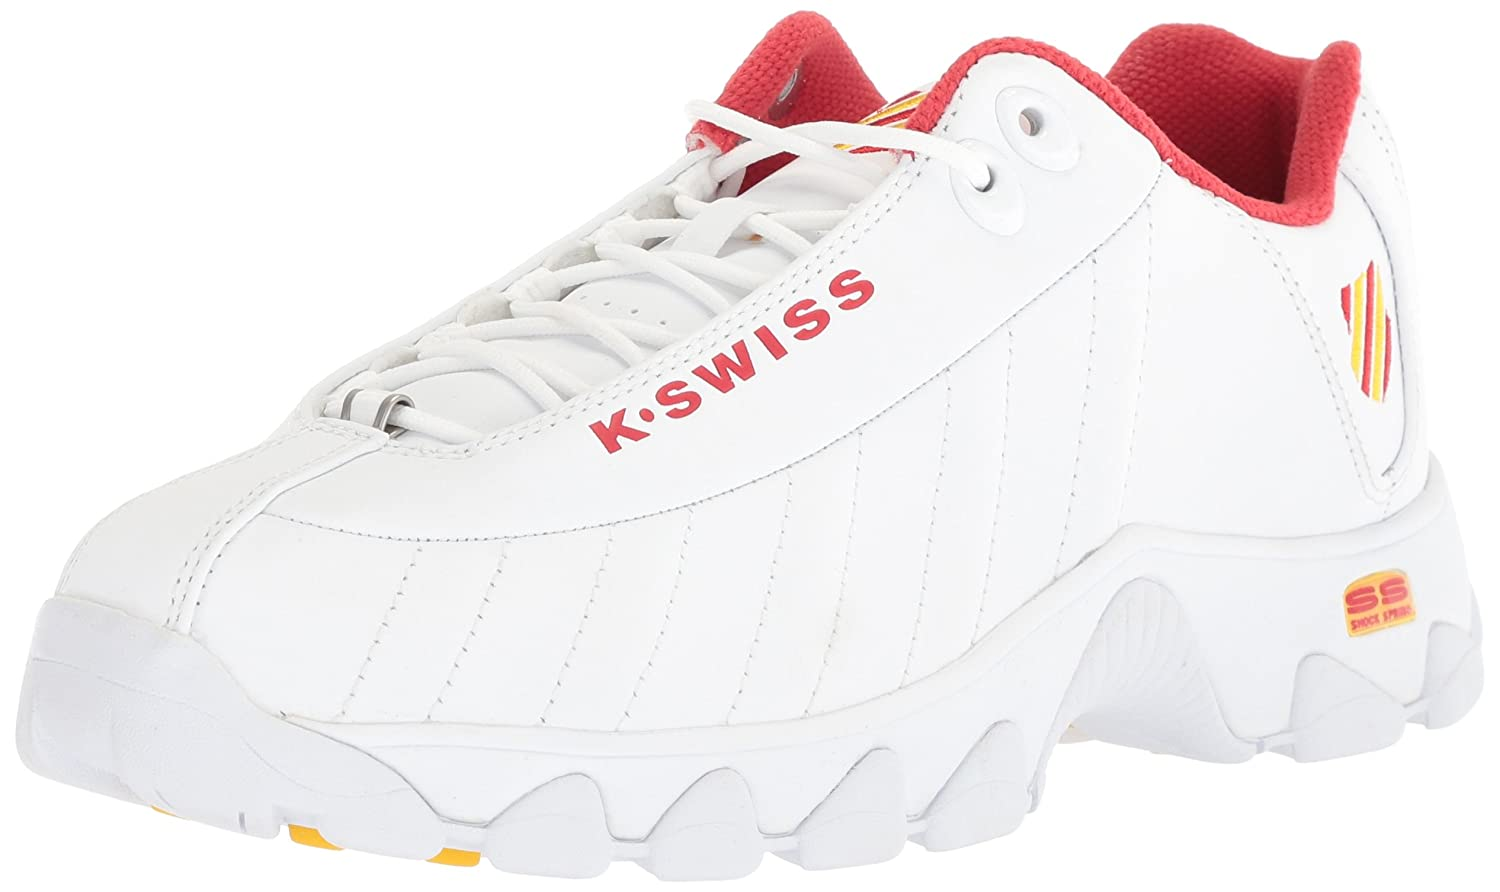 K-Swiss Mens ST329 Fashion Sneakers B073WPXW47 13 D(M) US|White/Red/Empire Yellow